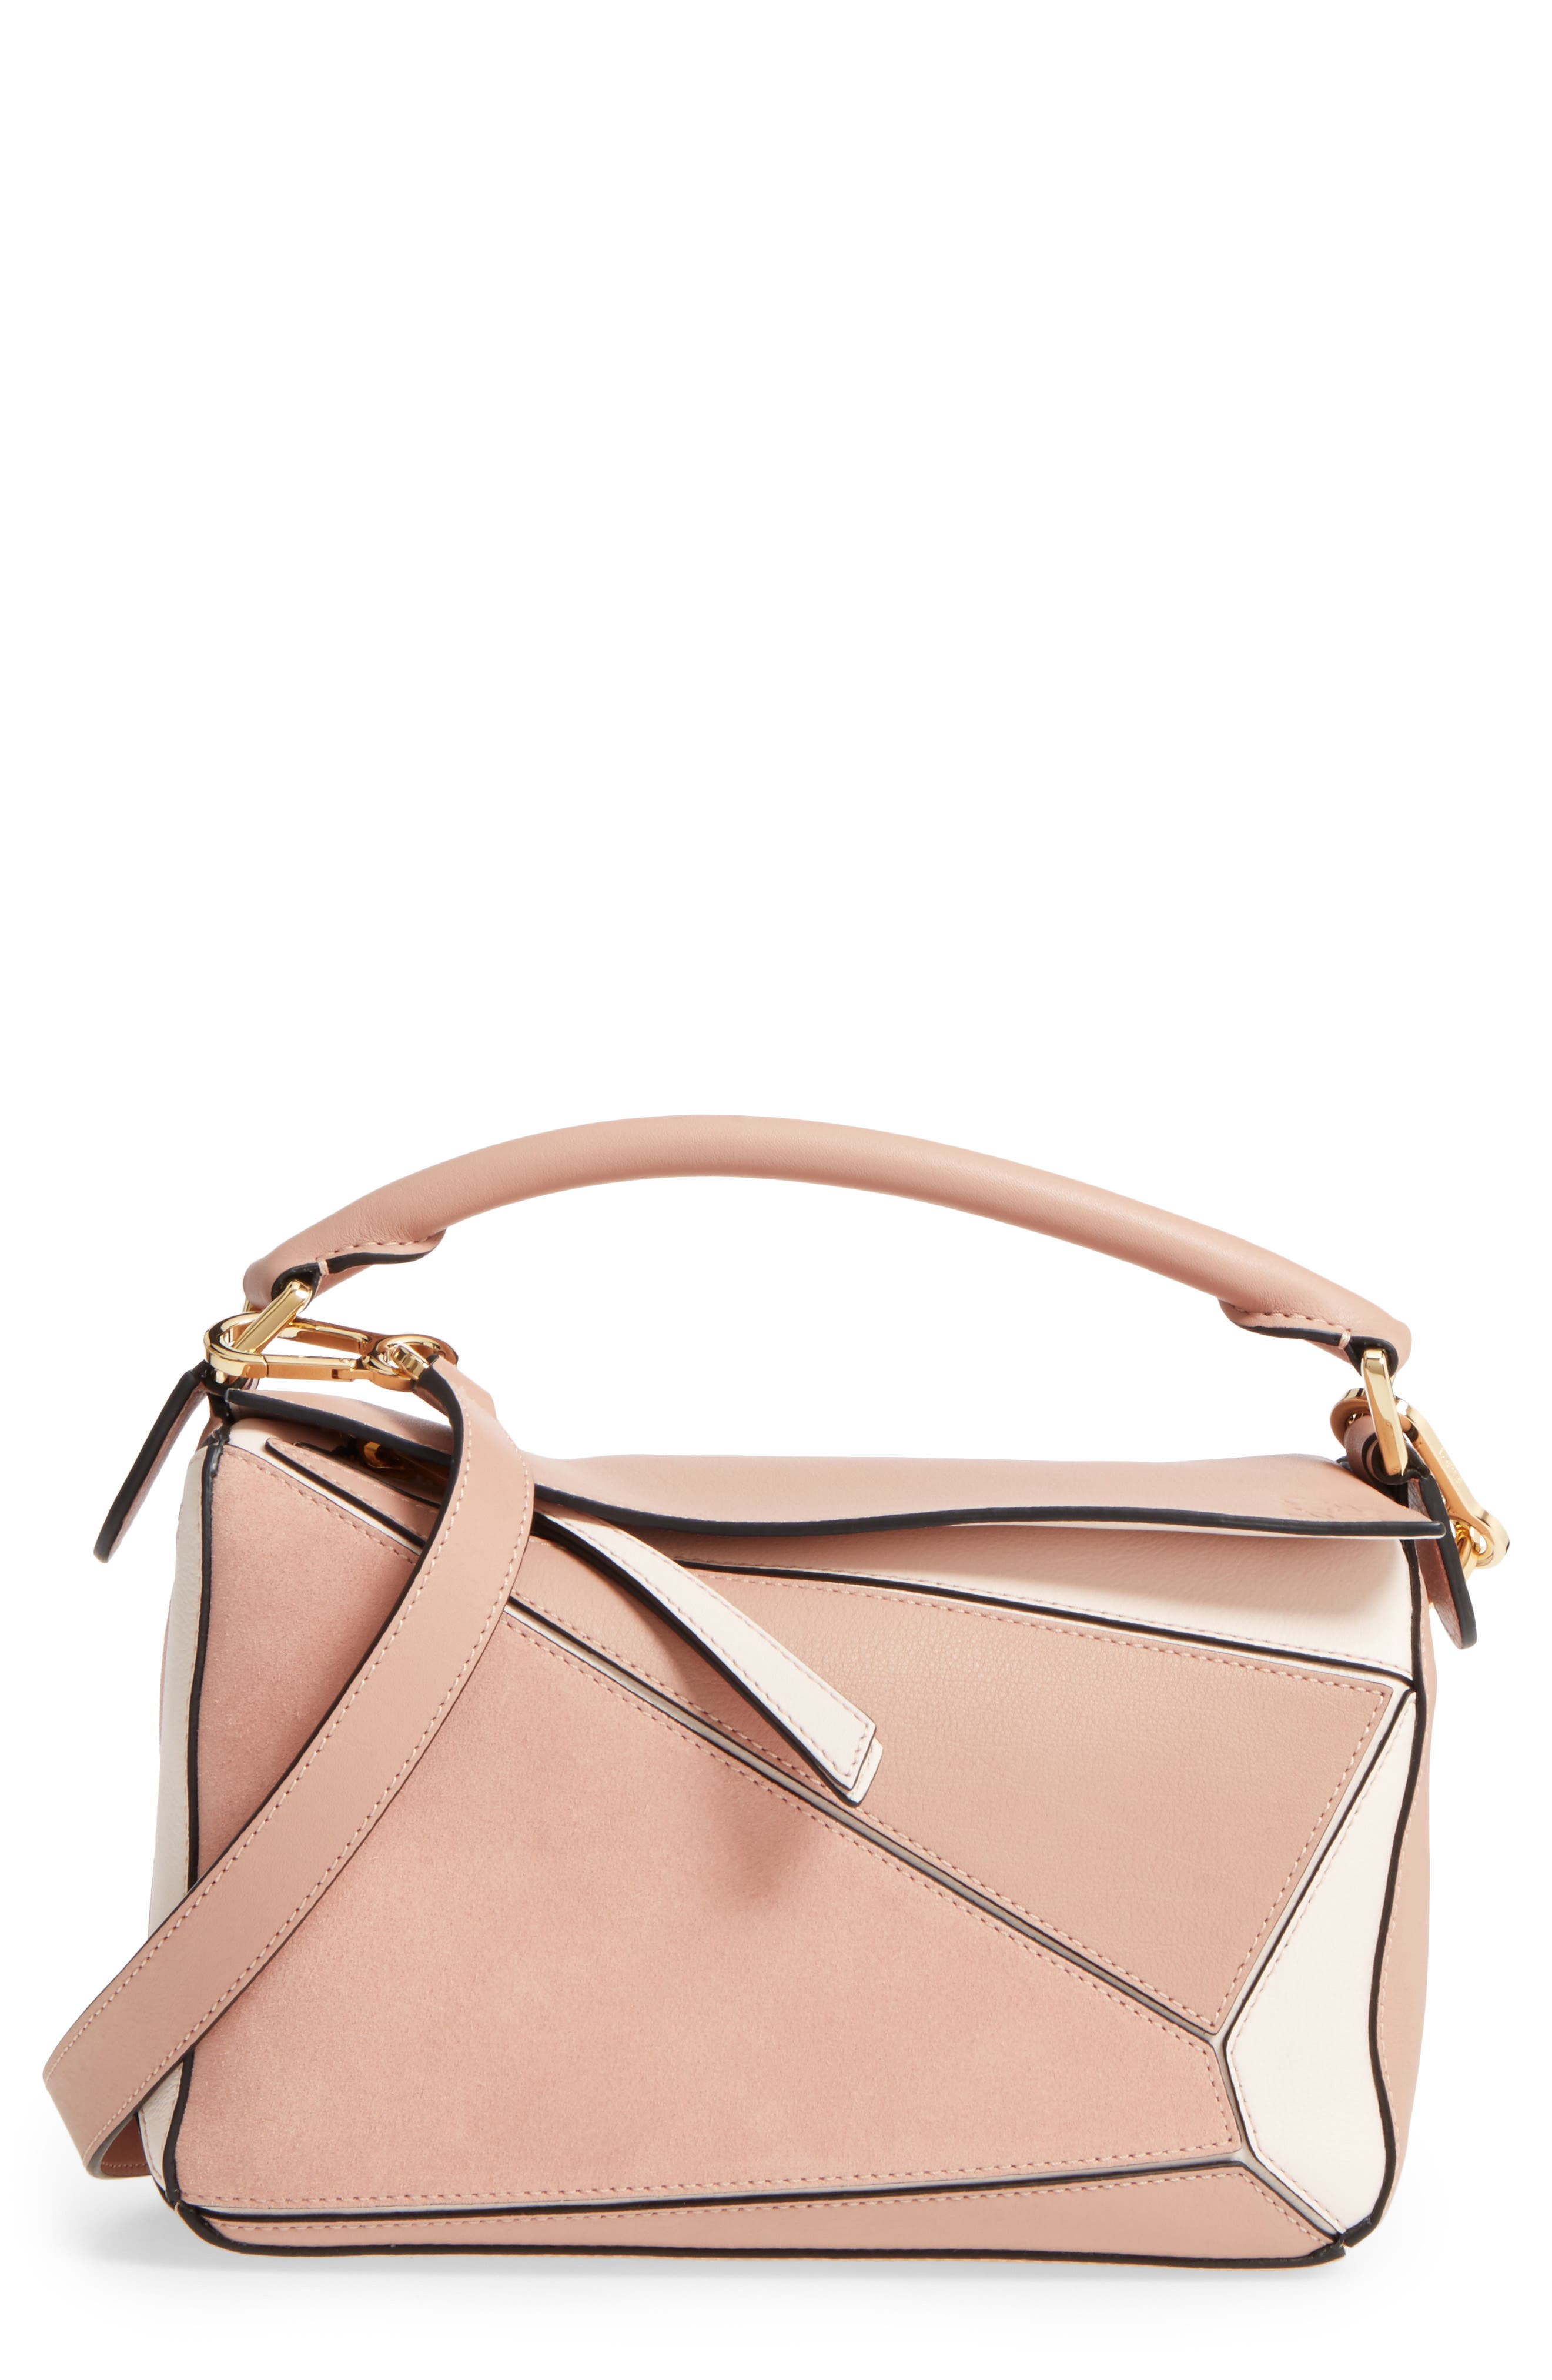 Small Puzzle Bicolor Leather Bag,                             Main thumbnail 1, color,                             BLUSH MULTITONE